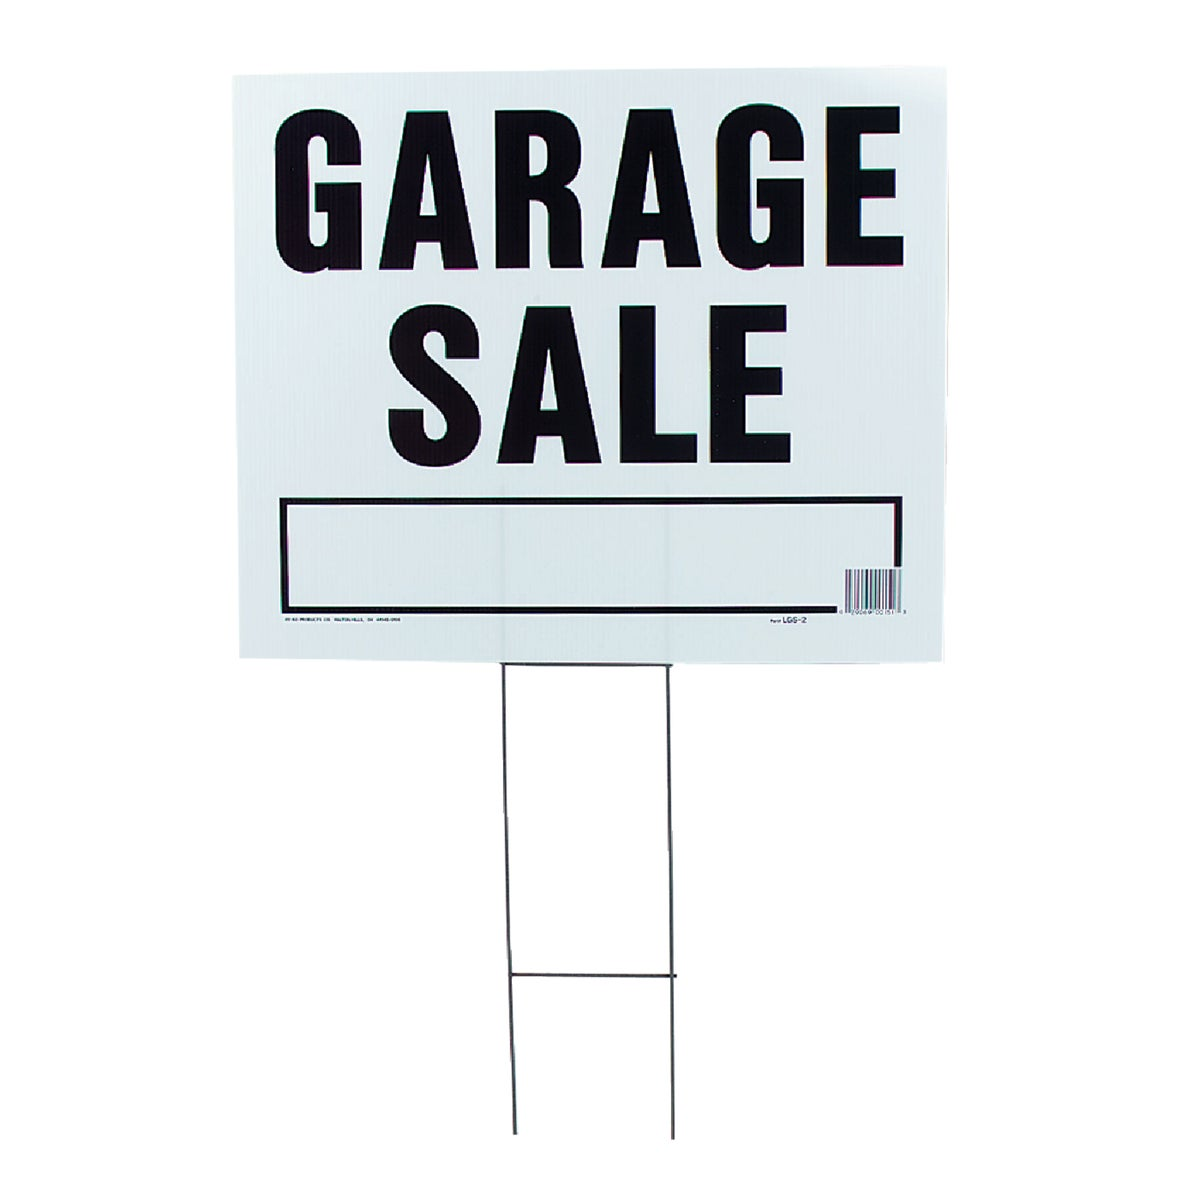 20X24 GARAGE SALE SIGN - LGS-2 by Hy Ko Prods Co